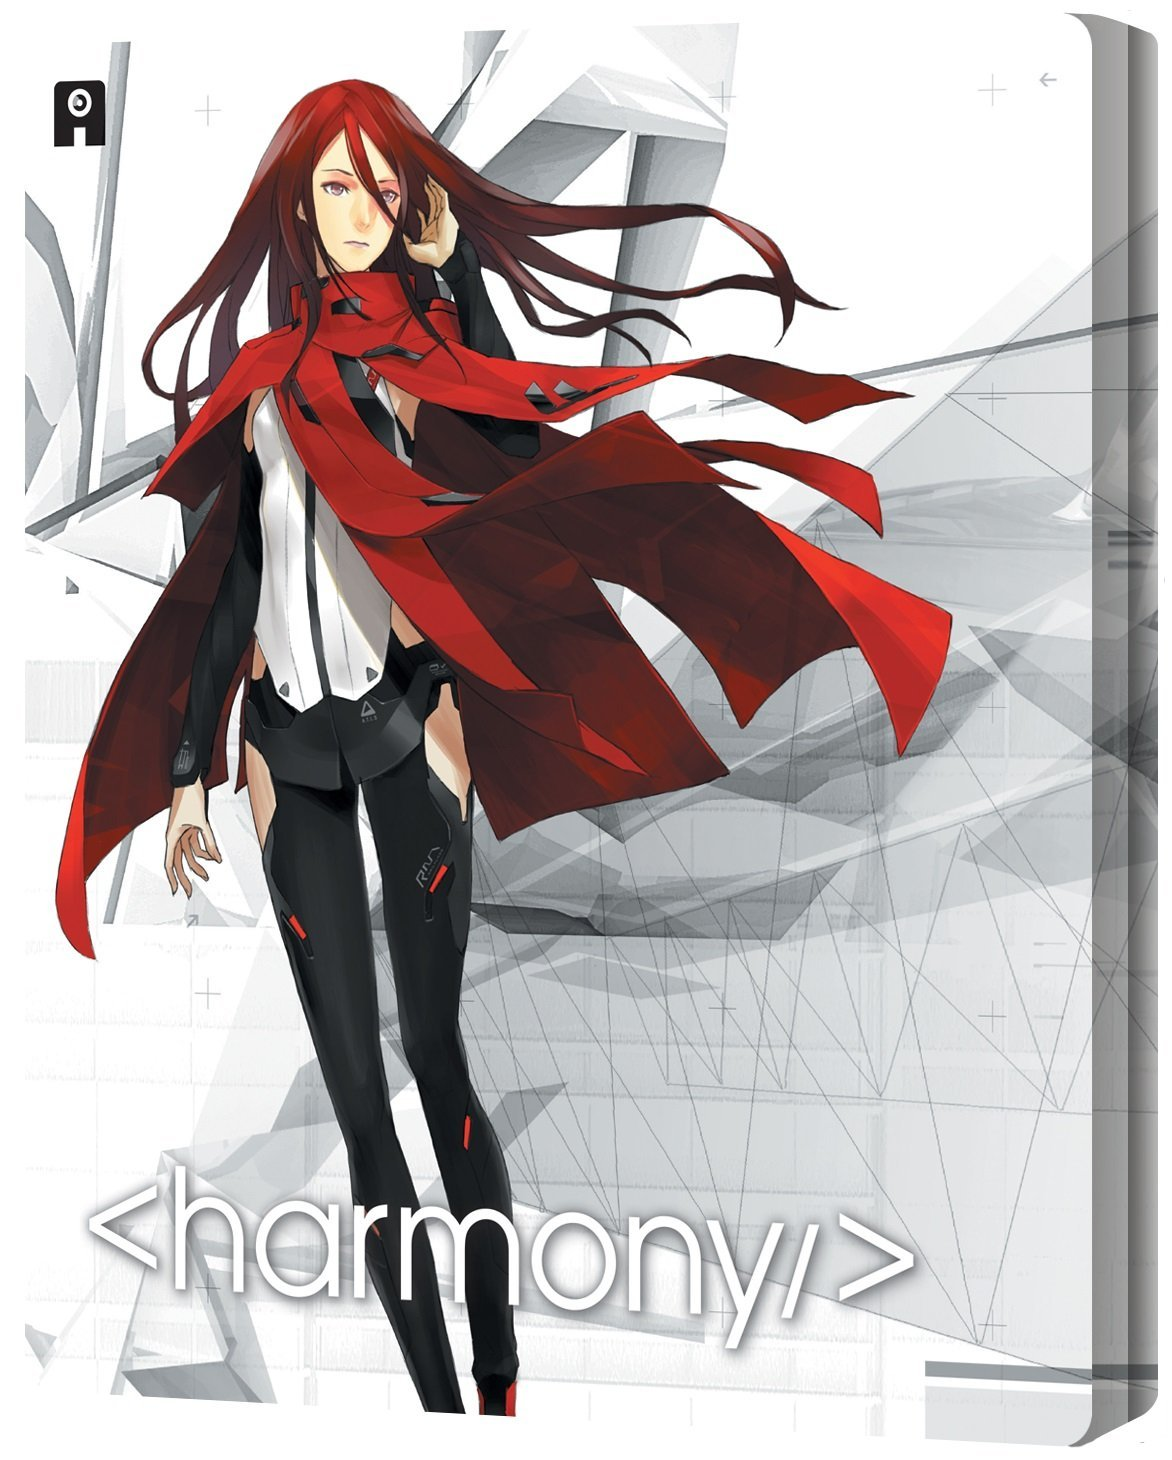 Project Itoh : Harmony